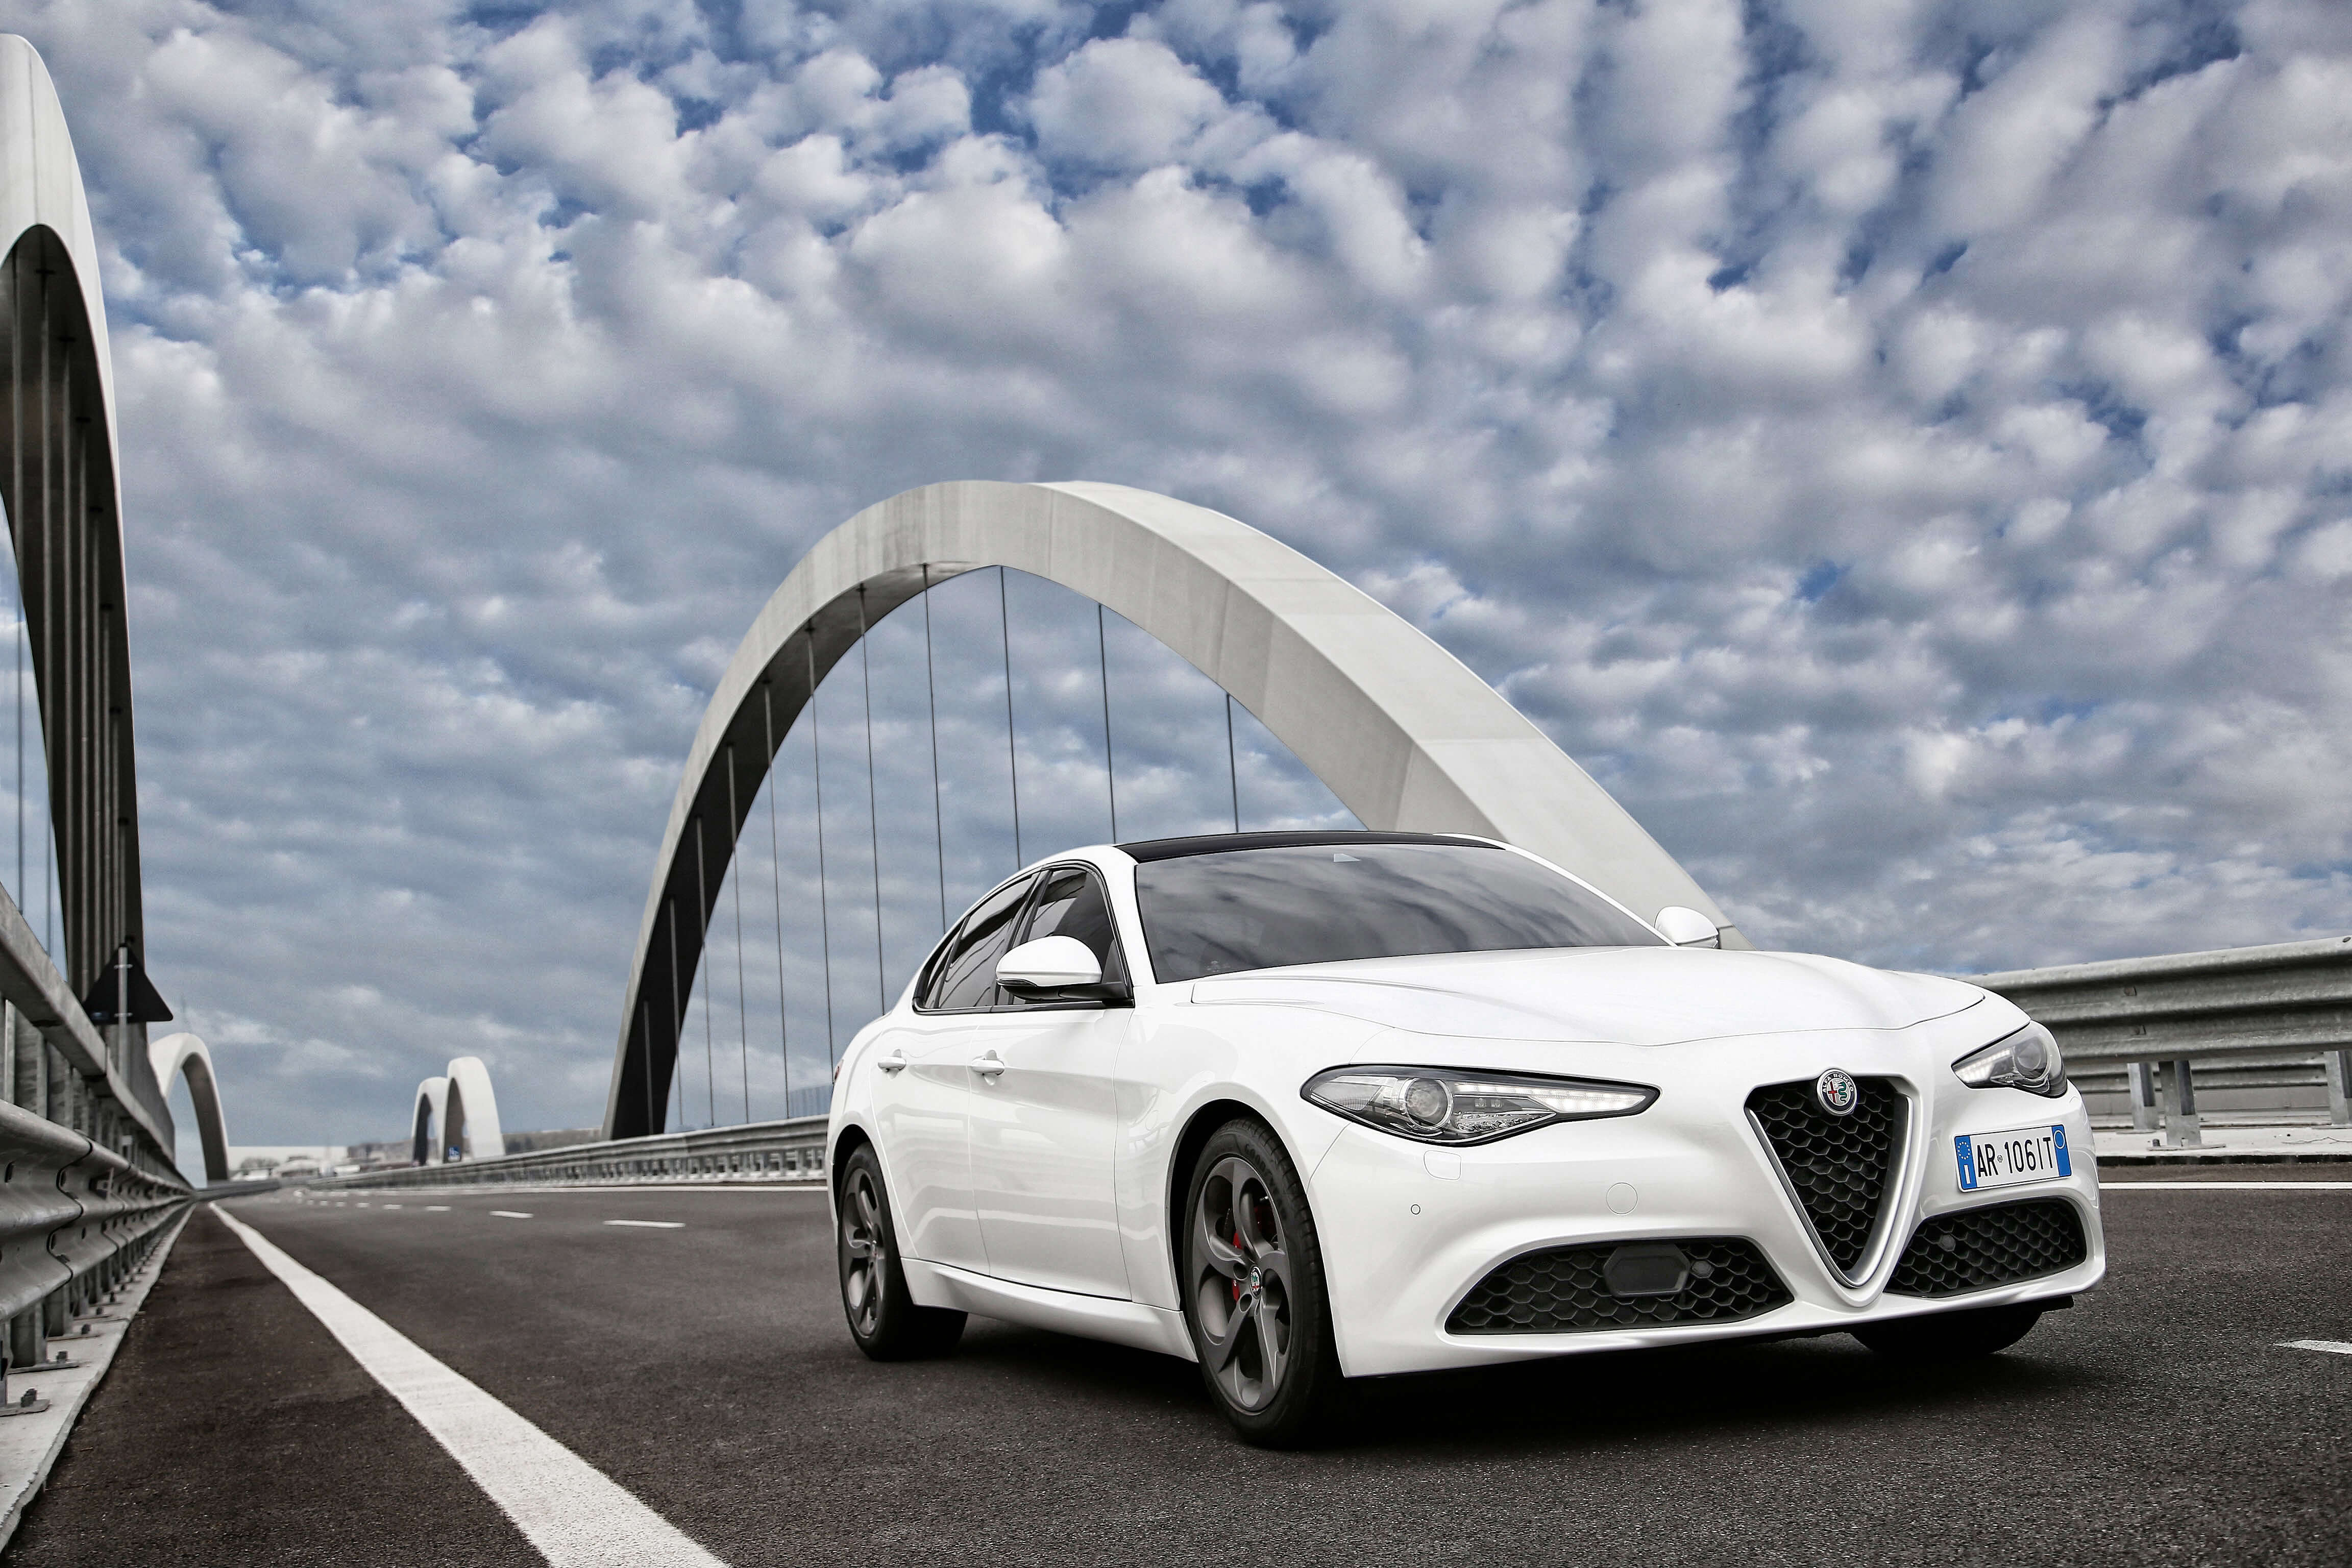 1366x768 Alfa Romeo Giulia 2016 1366x768 Resolution Hd 4k Wallpapers Images Backgrounds Photos And Pictures